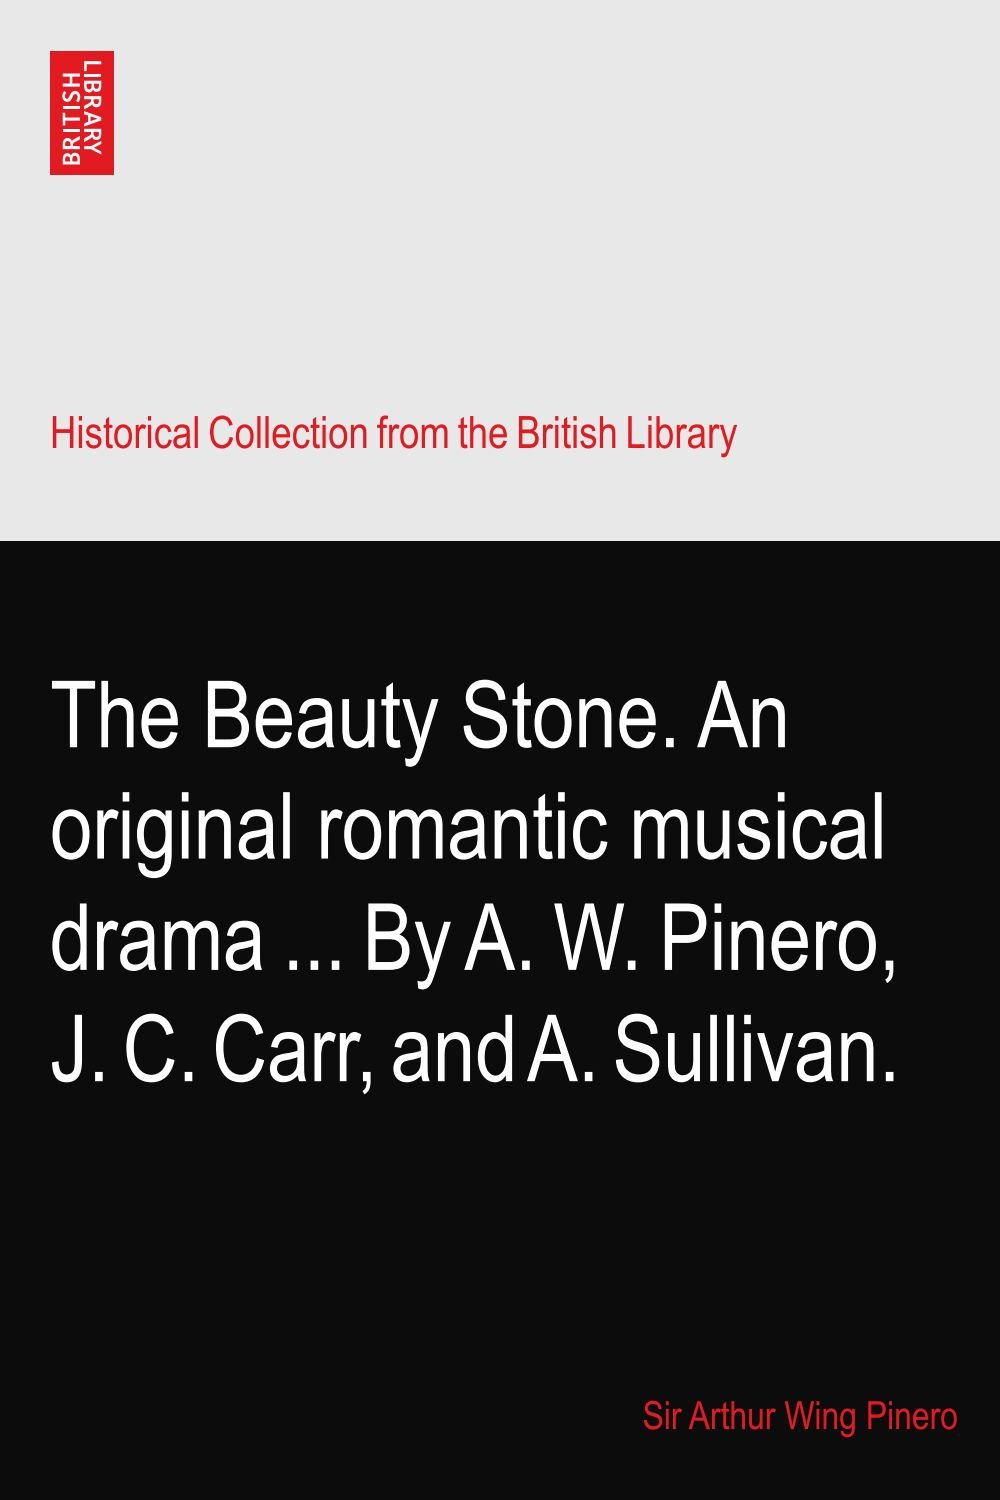 Download The Beauty Stone. An original romantic musical drama ... By A. W. Pinero, J. C. Carr, and A. Sullivan. pdf epub